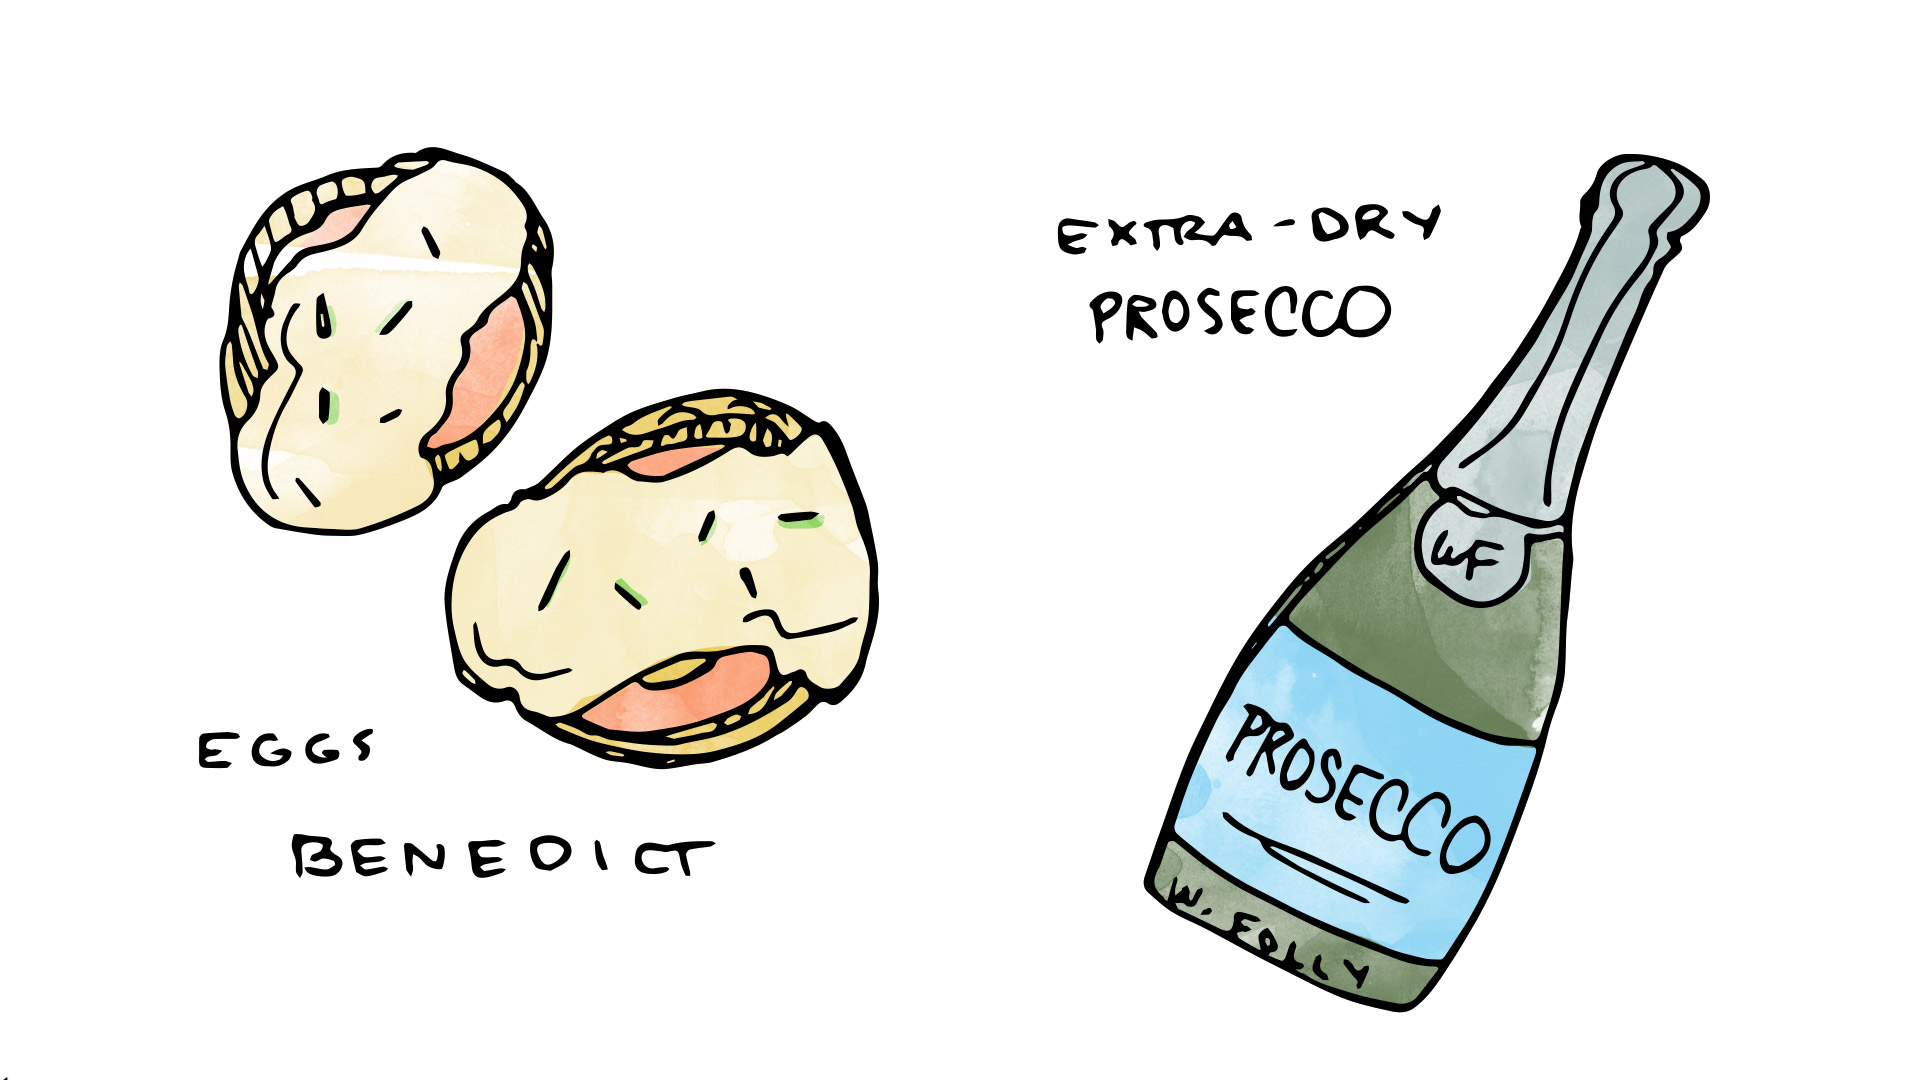 Eggs Benedict wine pairing with Prosecco illustration by Wine Folly